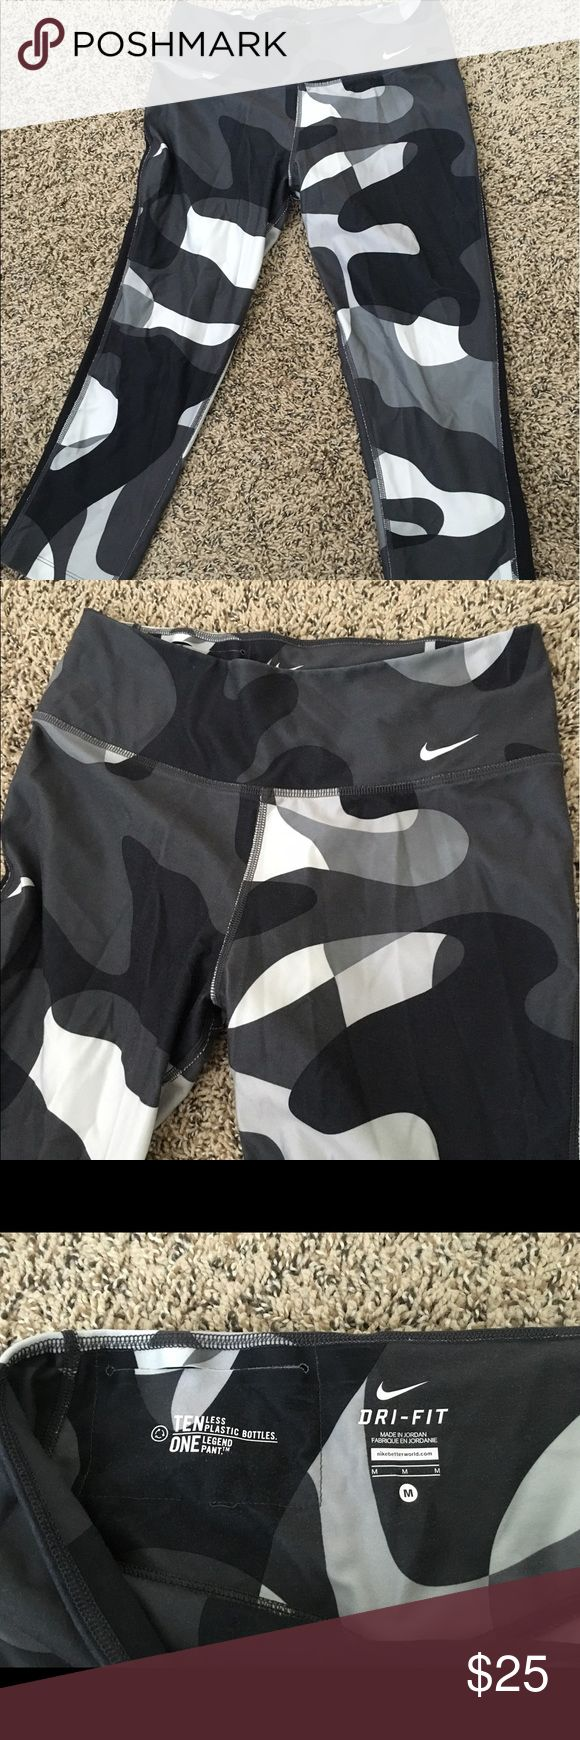 Nike Dri-Fit Camo Spandex - Like NEW! Crop Dri-Fit Spandex - super comfortable material and cool camo design Nike Pants Ankle & Cropped